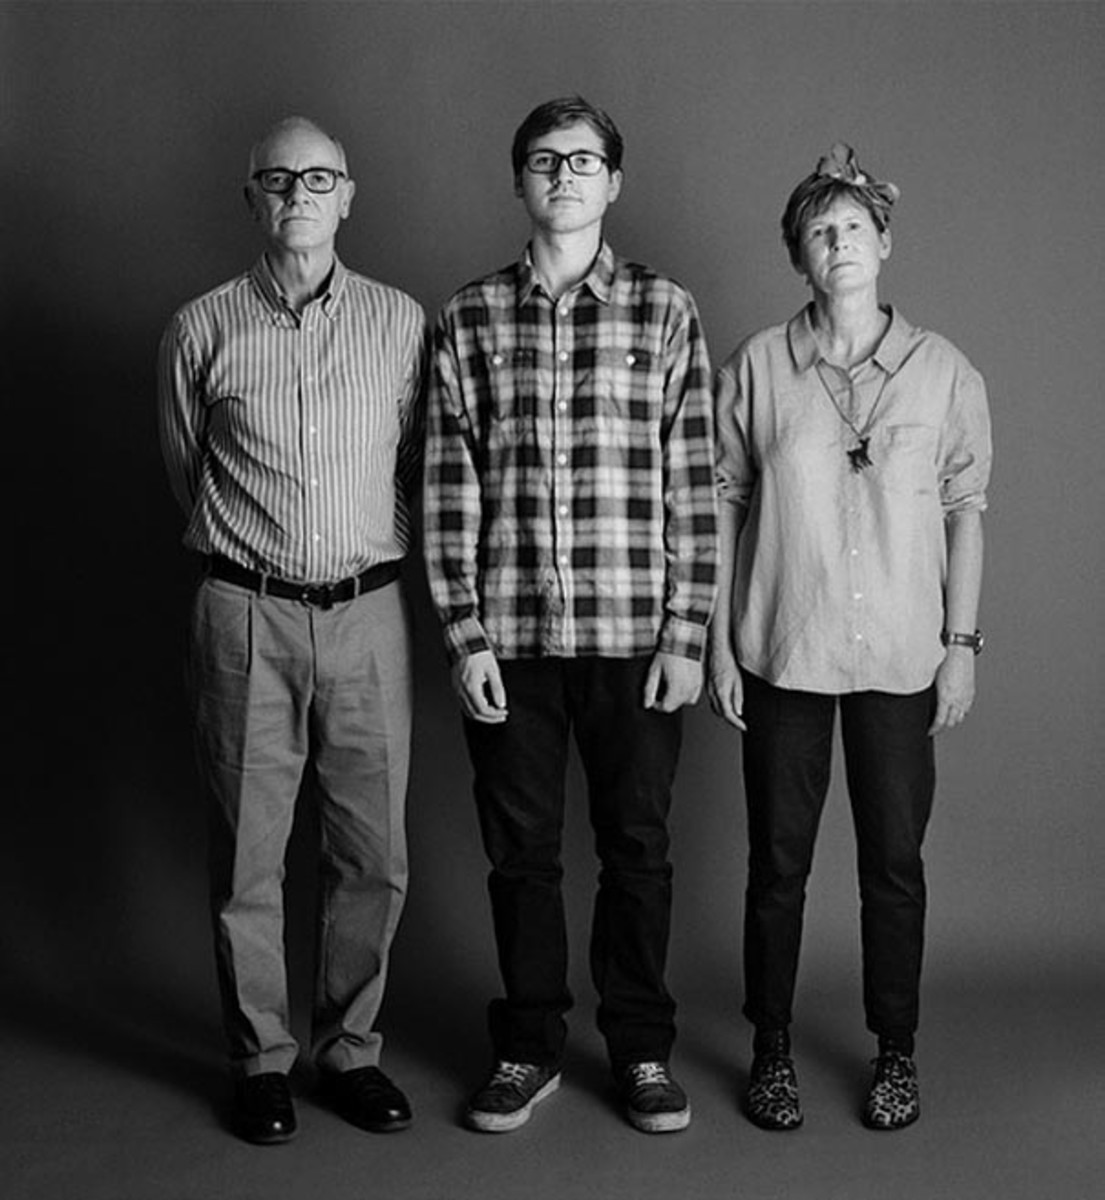 the-family-aging-photo-series-21